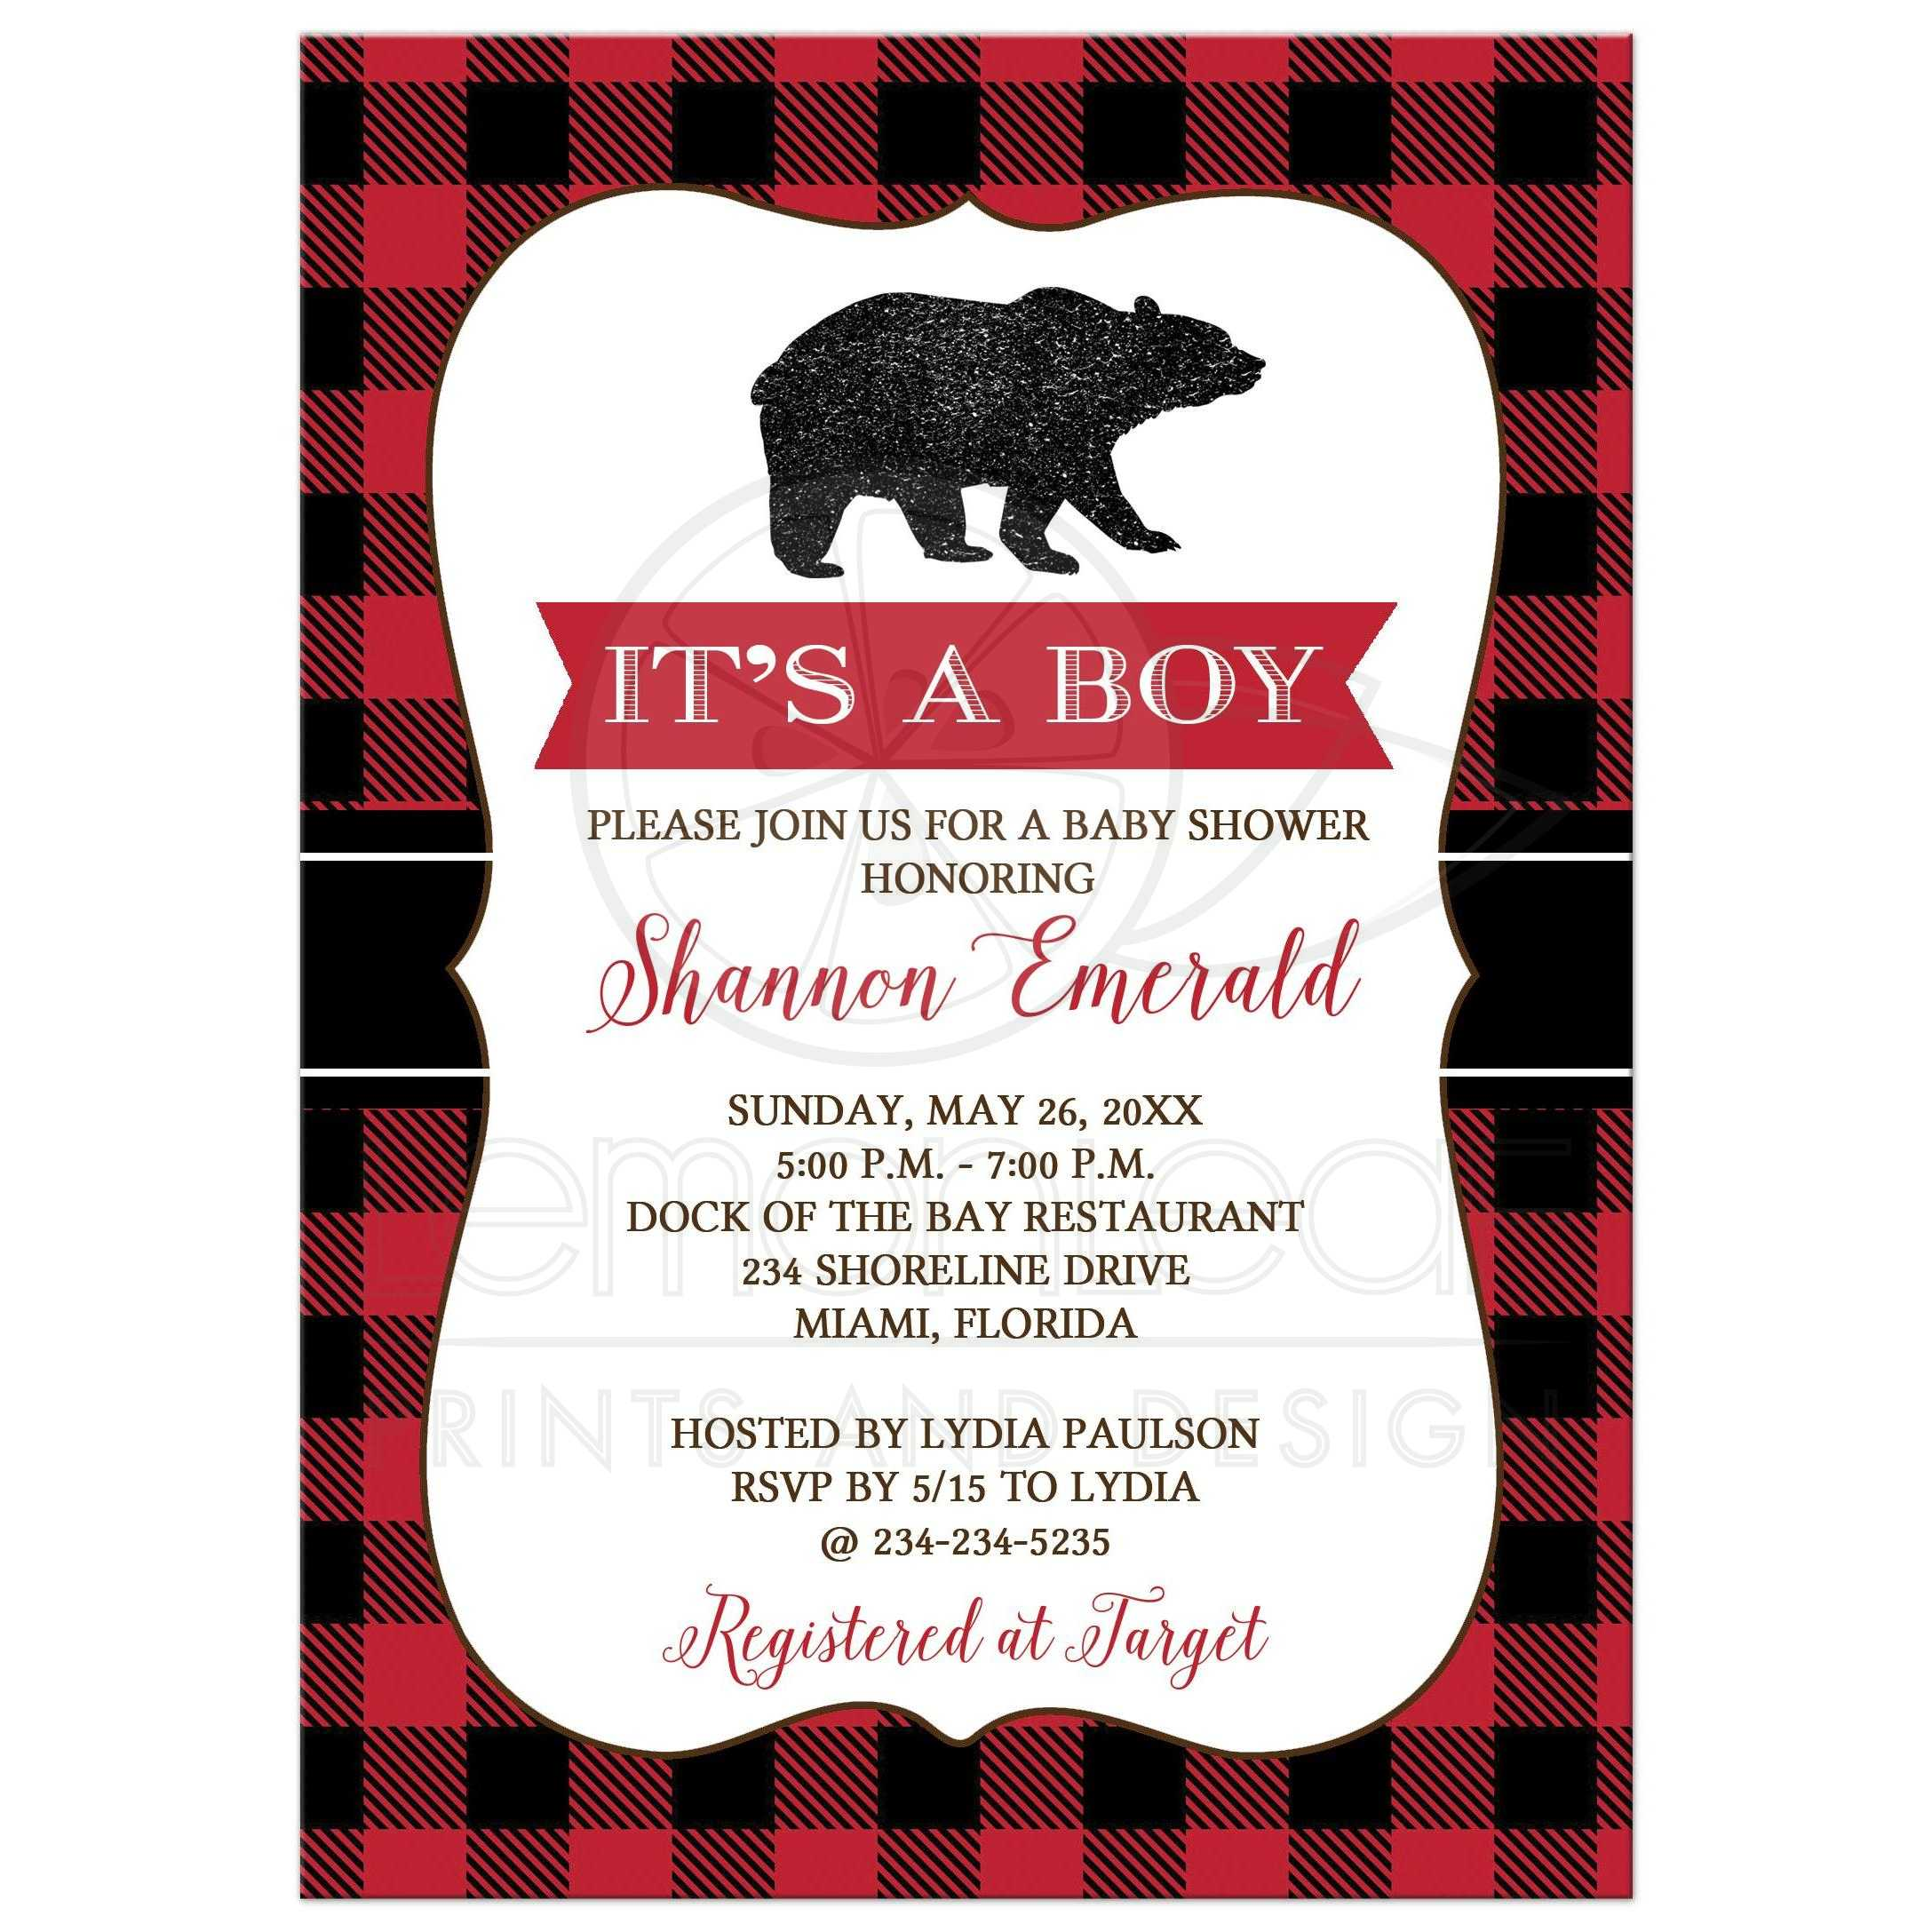 Lumberjack Black Bear Boy Baby Shower Invitation